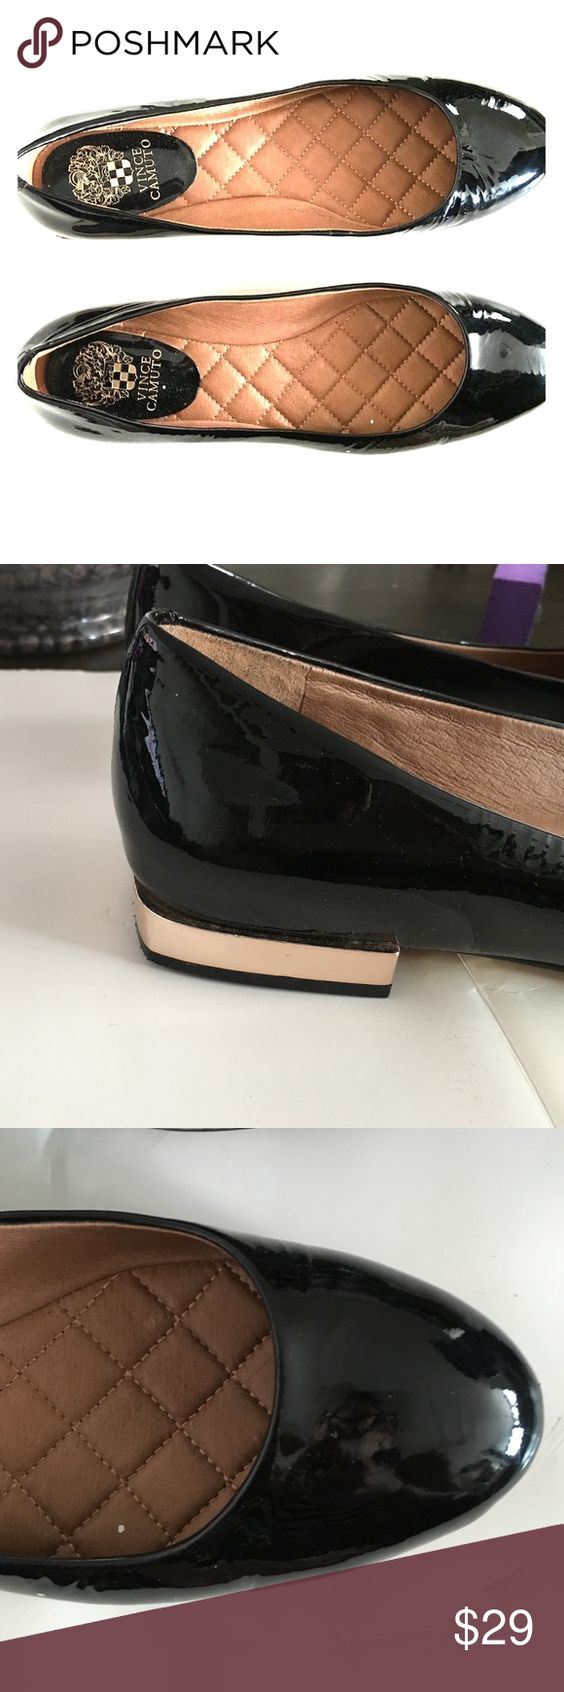 Patent leather Vince Camuto flats with gold heel Lightly worn flats with quilted insole and gold heel Vince Camuto Shoes Flats & Loafers